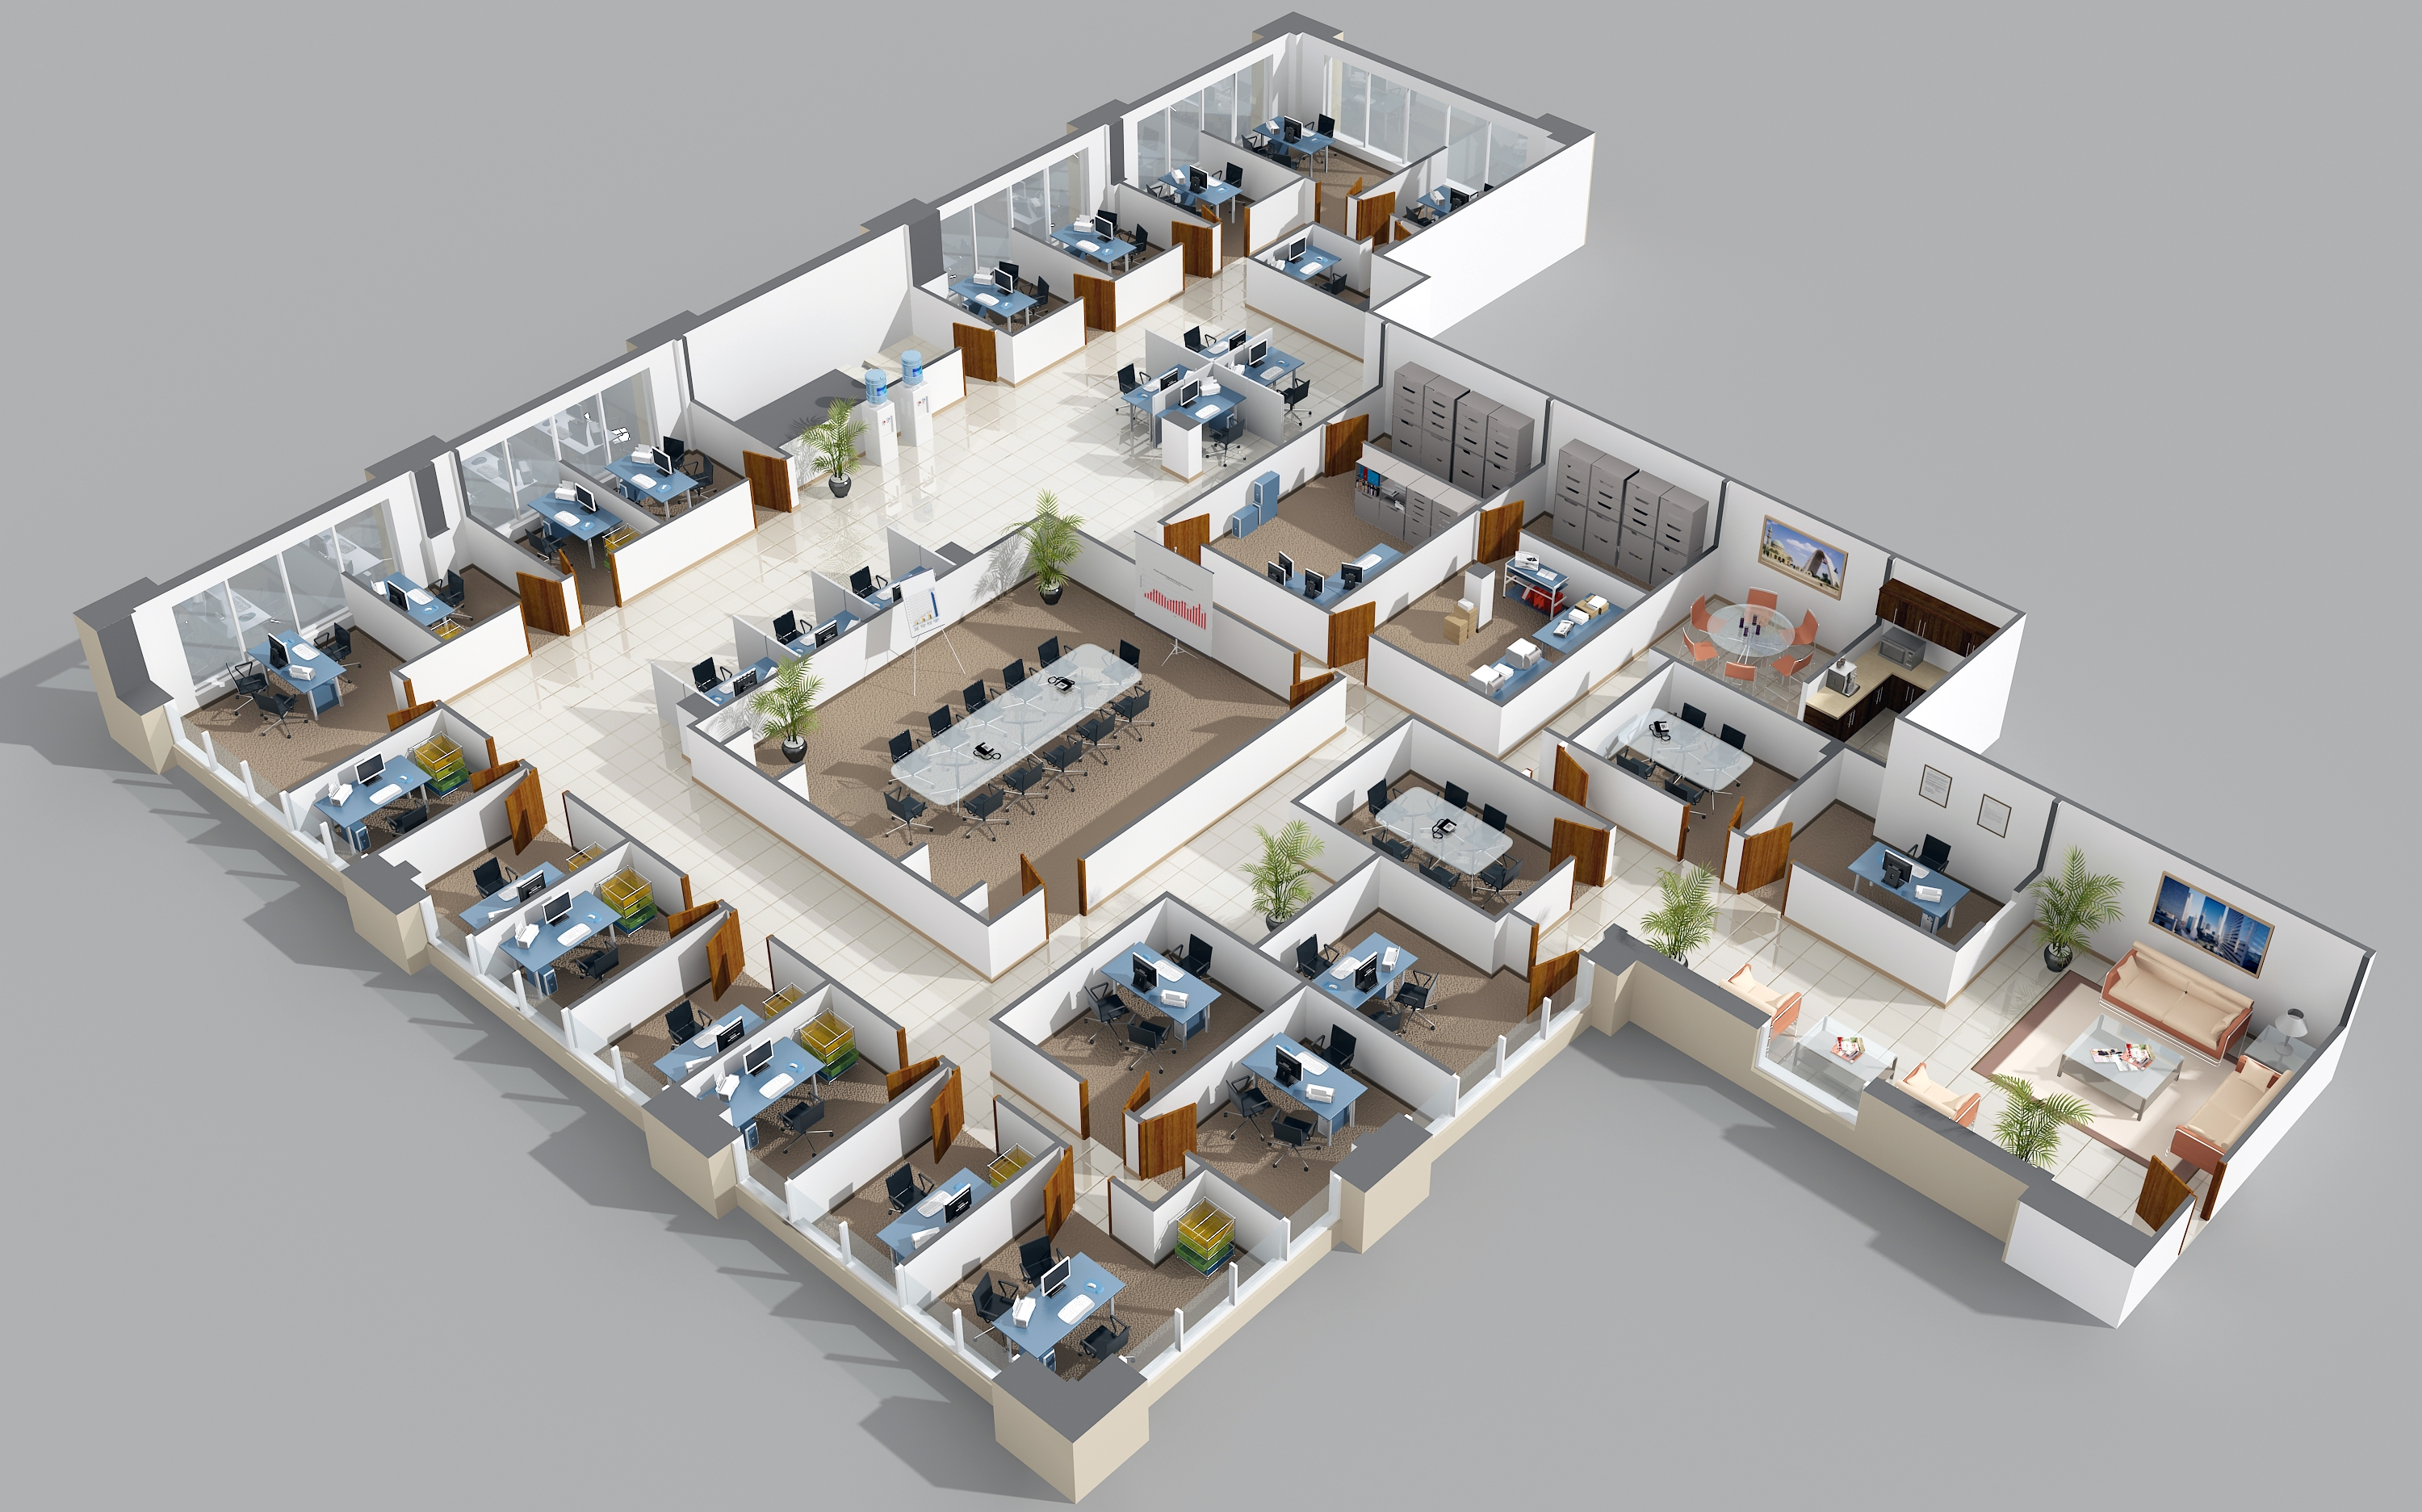 3D Floor Plans on Your OpenOfficeSpace